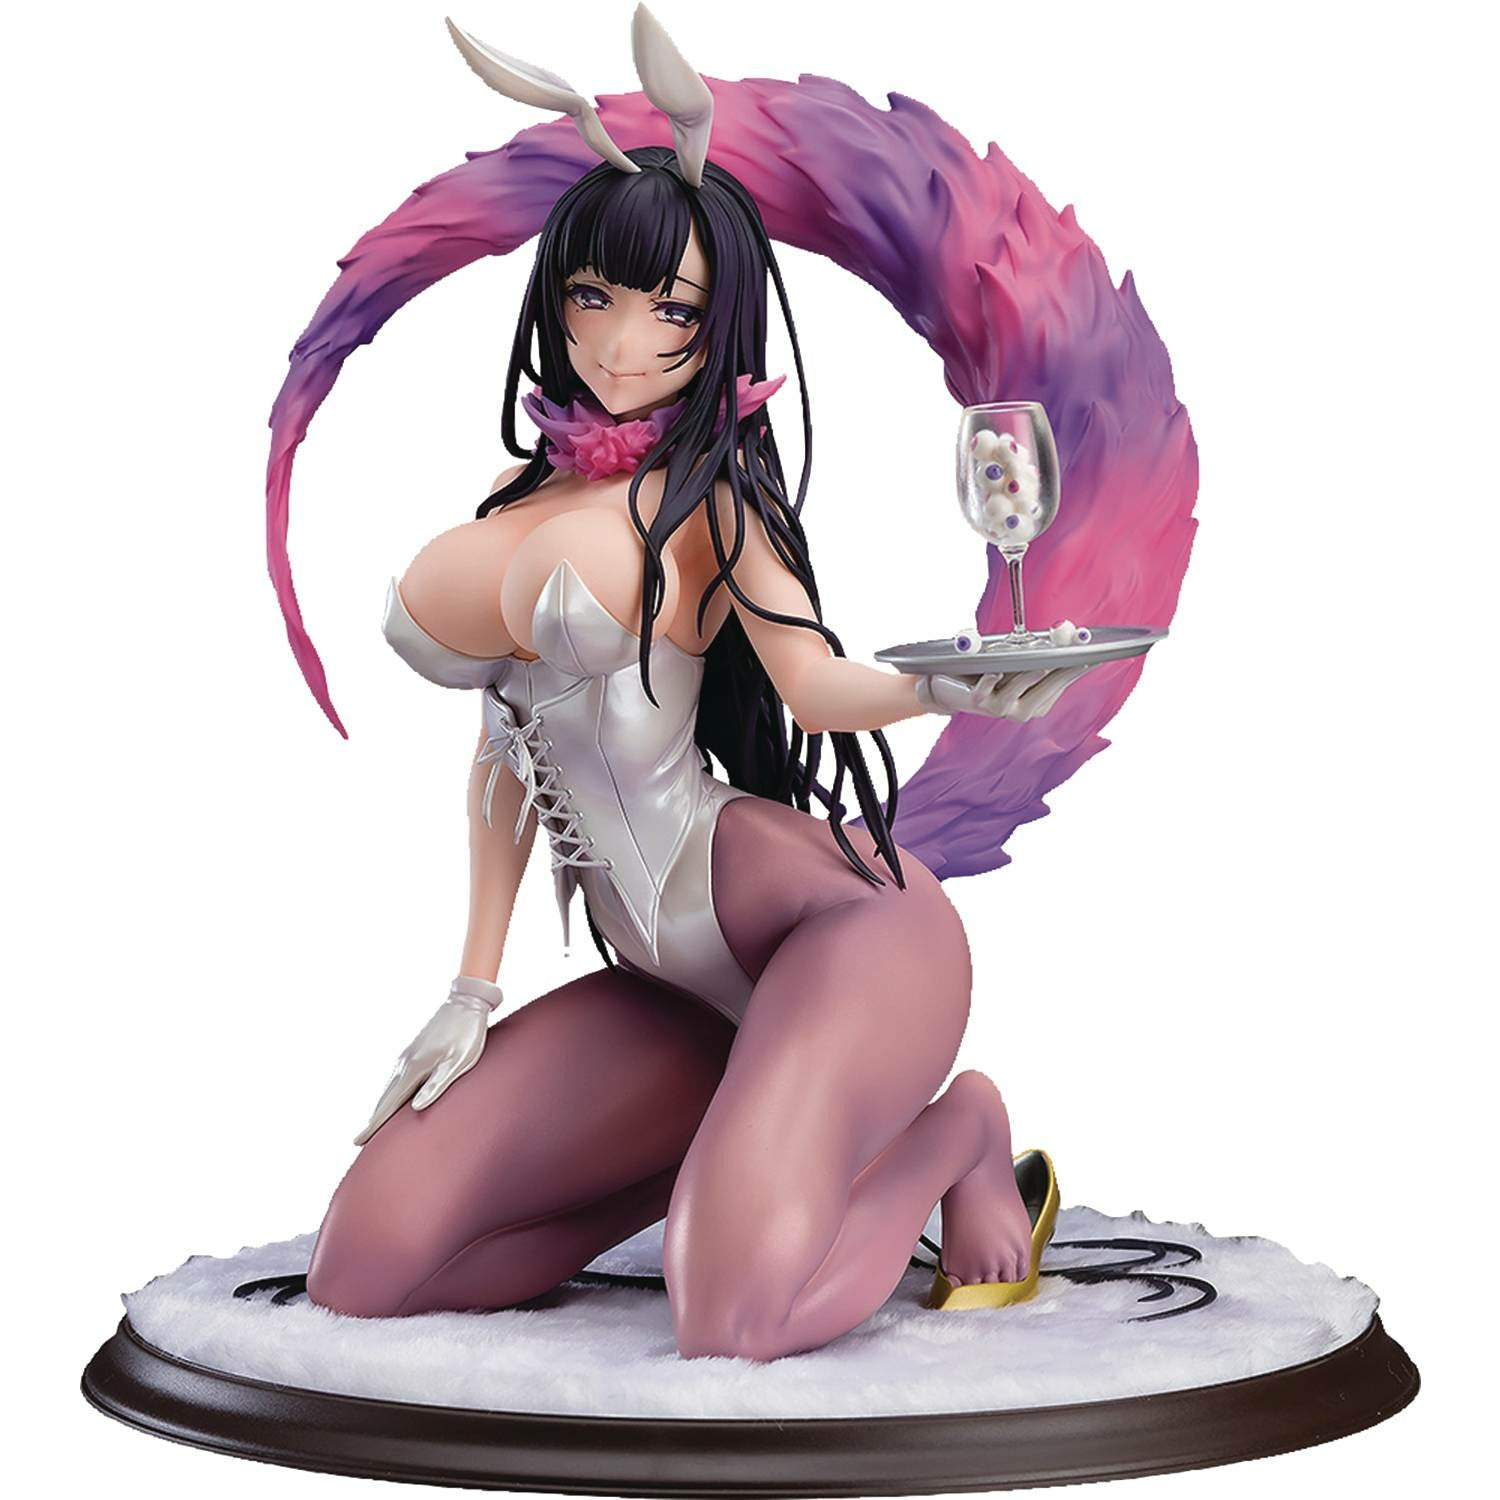 Elder Sister Like One Chiyo 1/6 PVC Figure Unnamable Bunny Ver